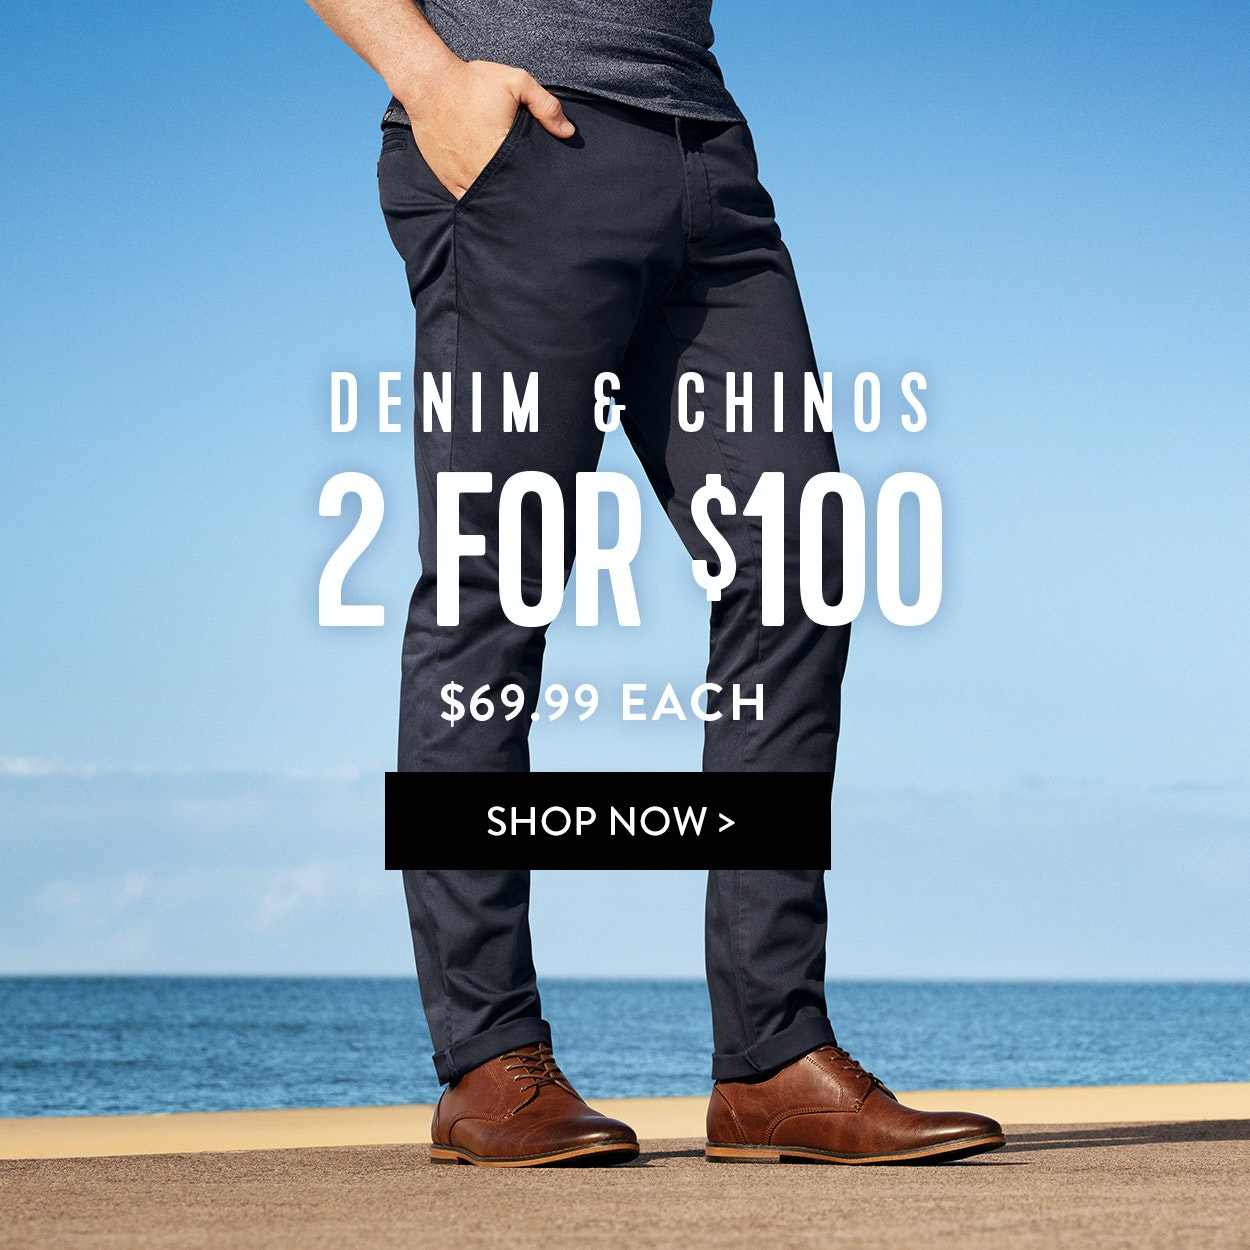 Chinos & Denim mens pants: 2 for $100